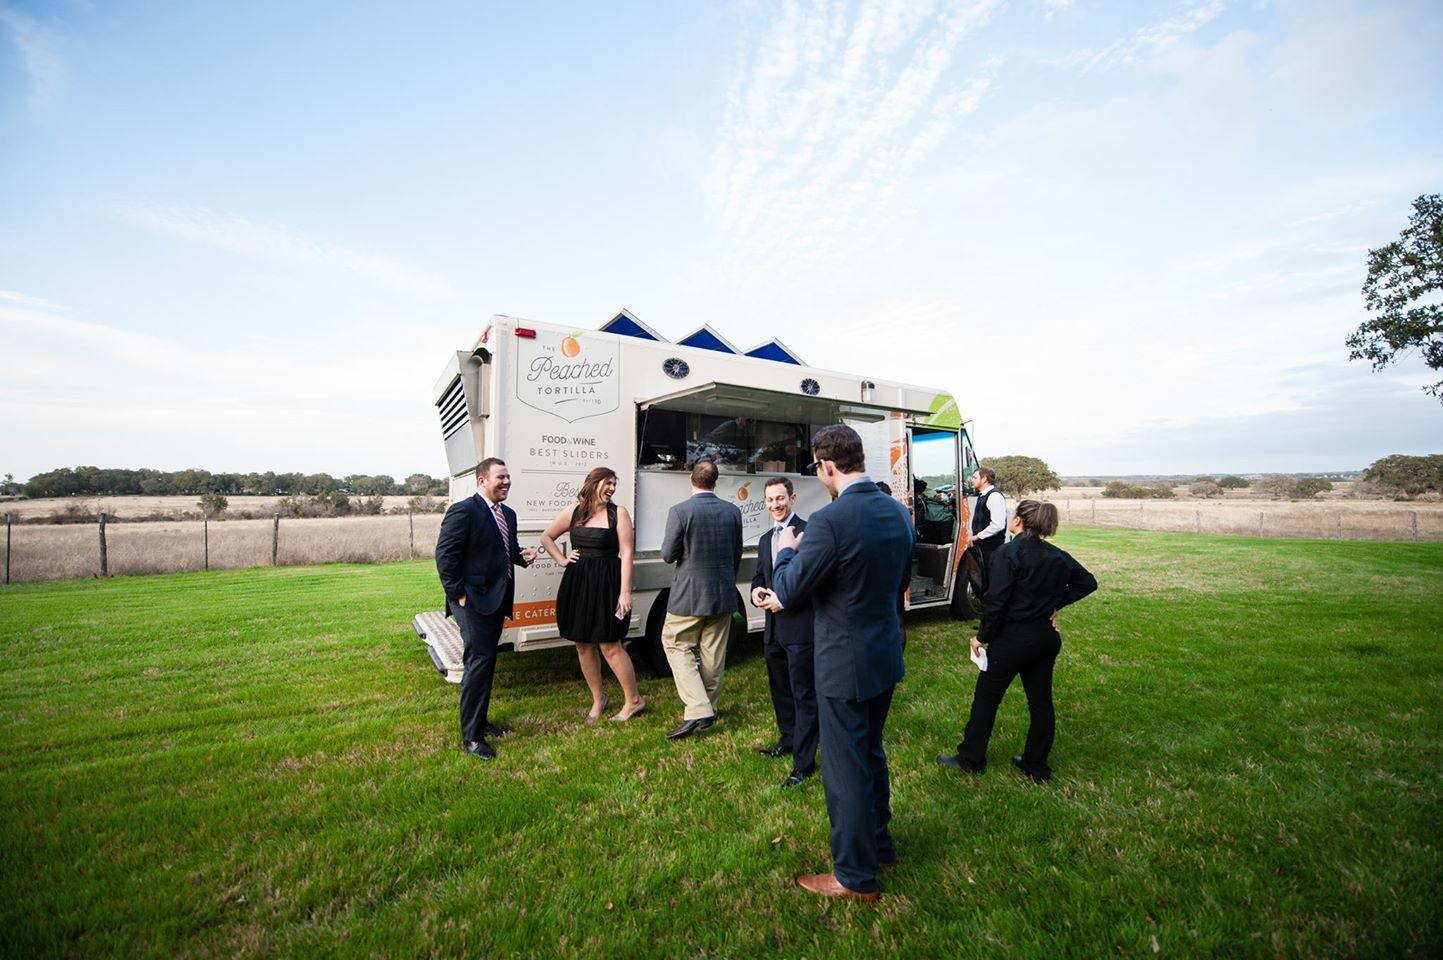 The Peached Tortilla's food truck